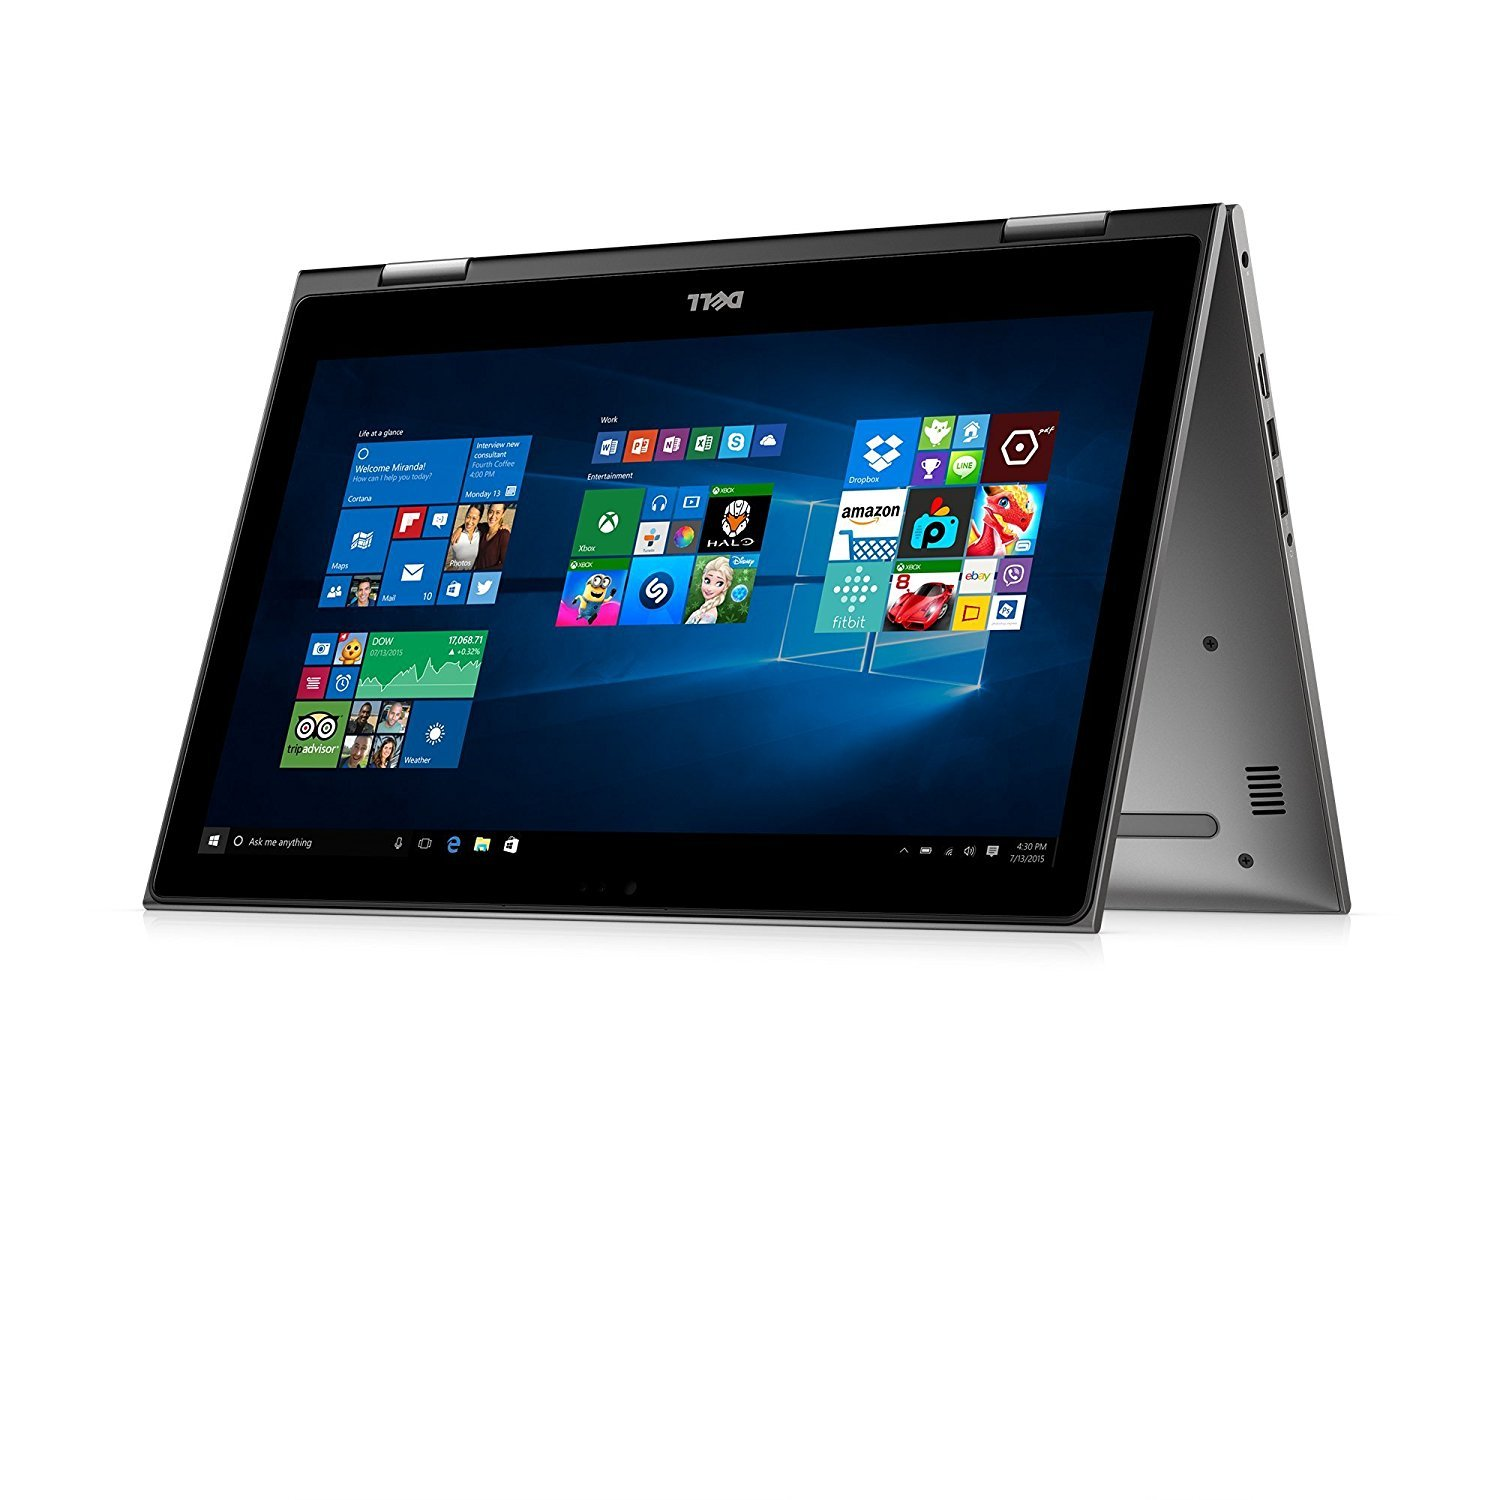 Amazon.com: Dell Inspiron 15 5000 2-in-1 Laptop Computer: Core i7-8550U, 256GB SSD, 8GB RAM, 15.6-inch Full HD Touch Display, Backlit Keyboard, ...